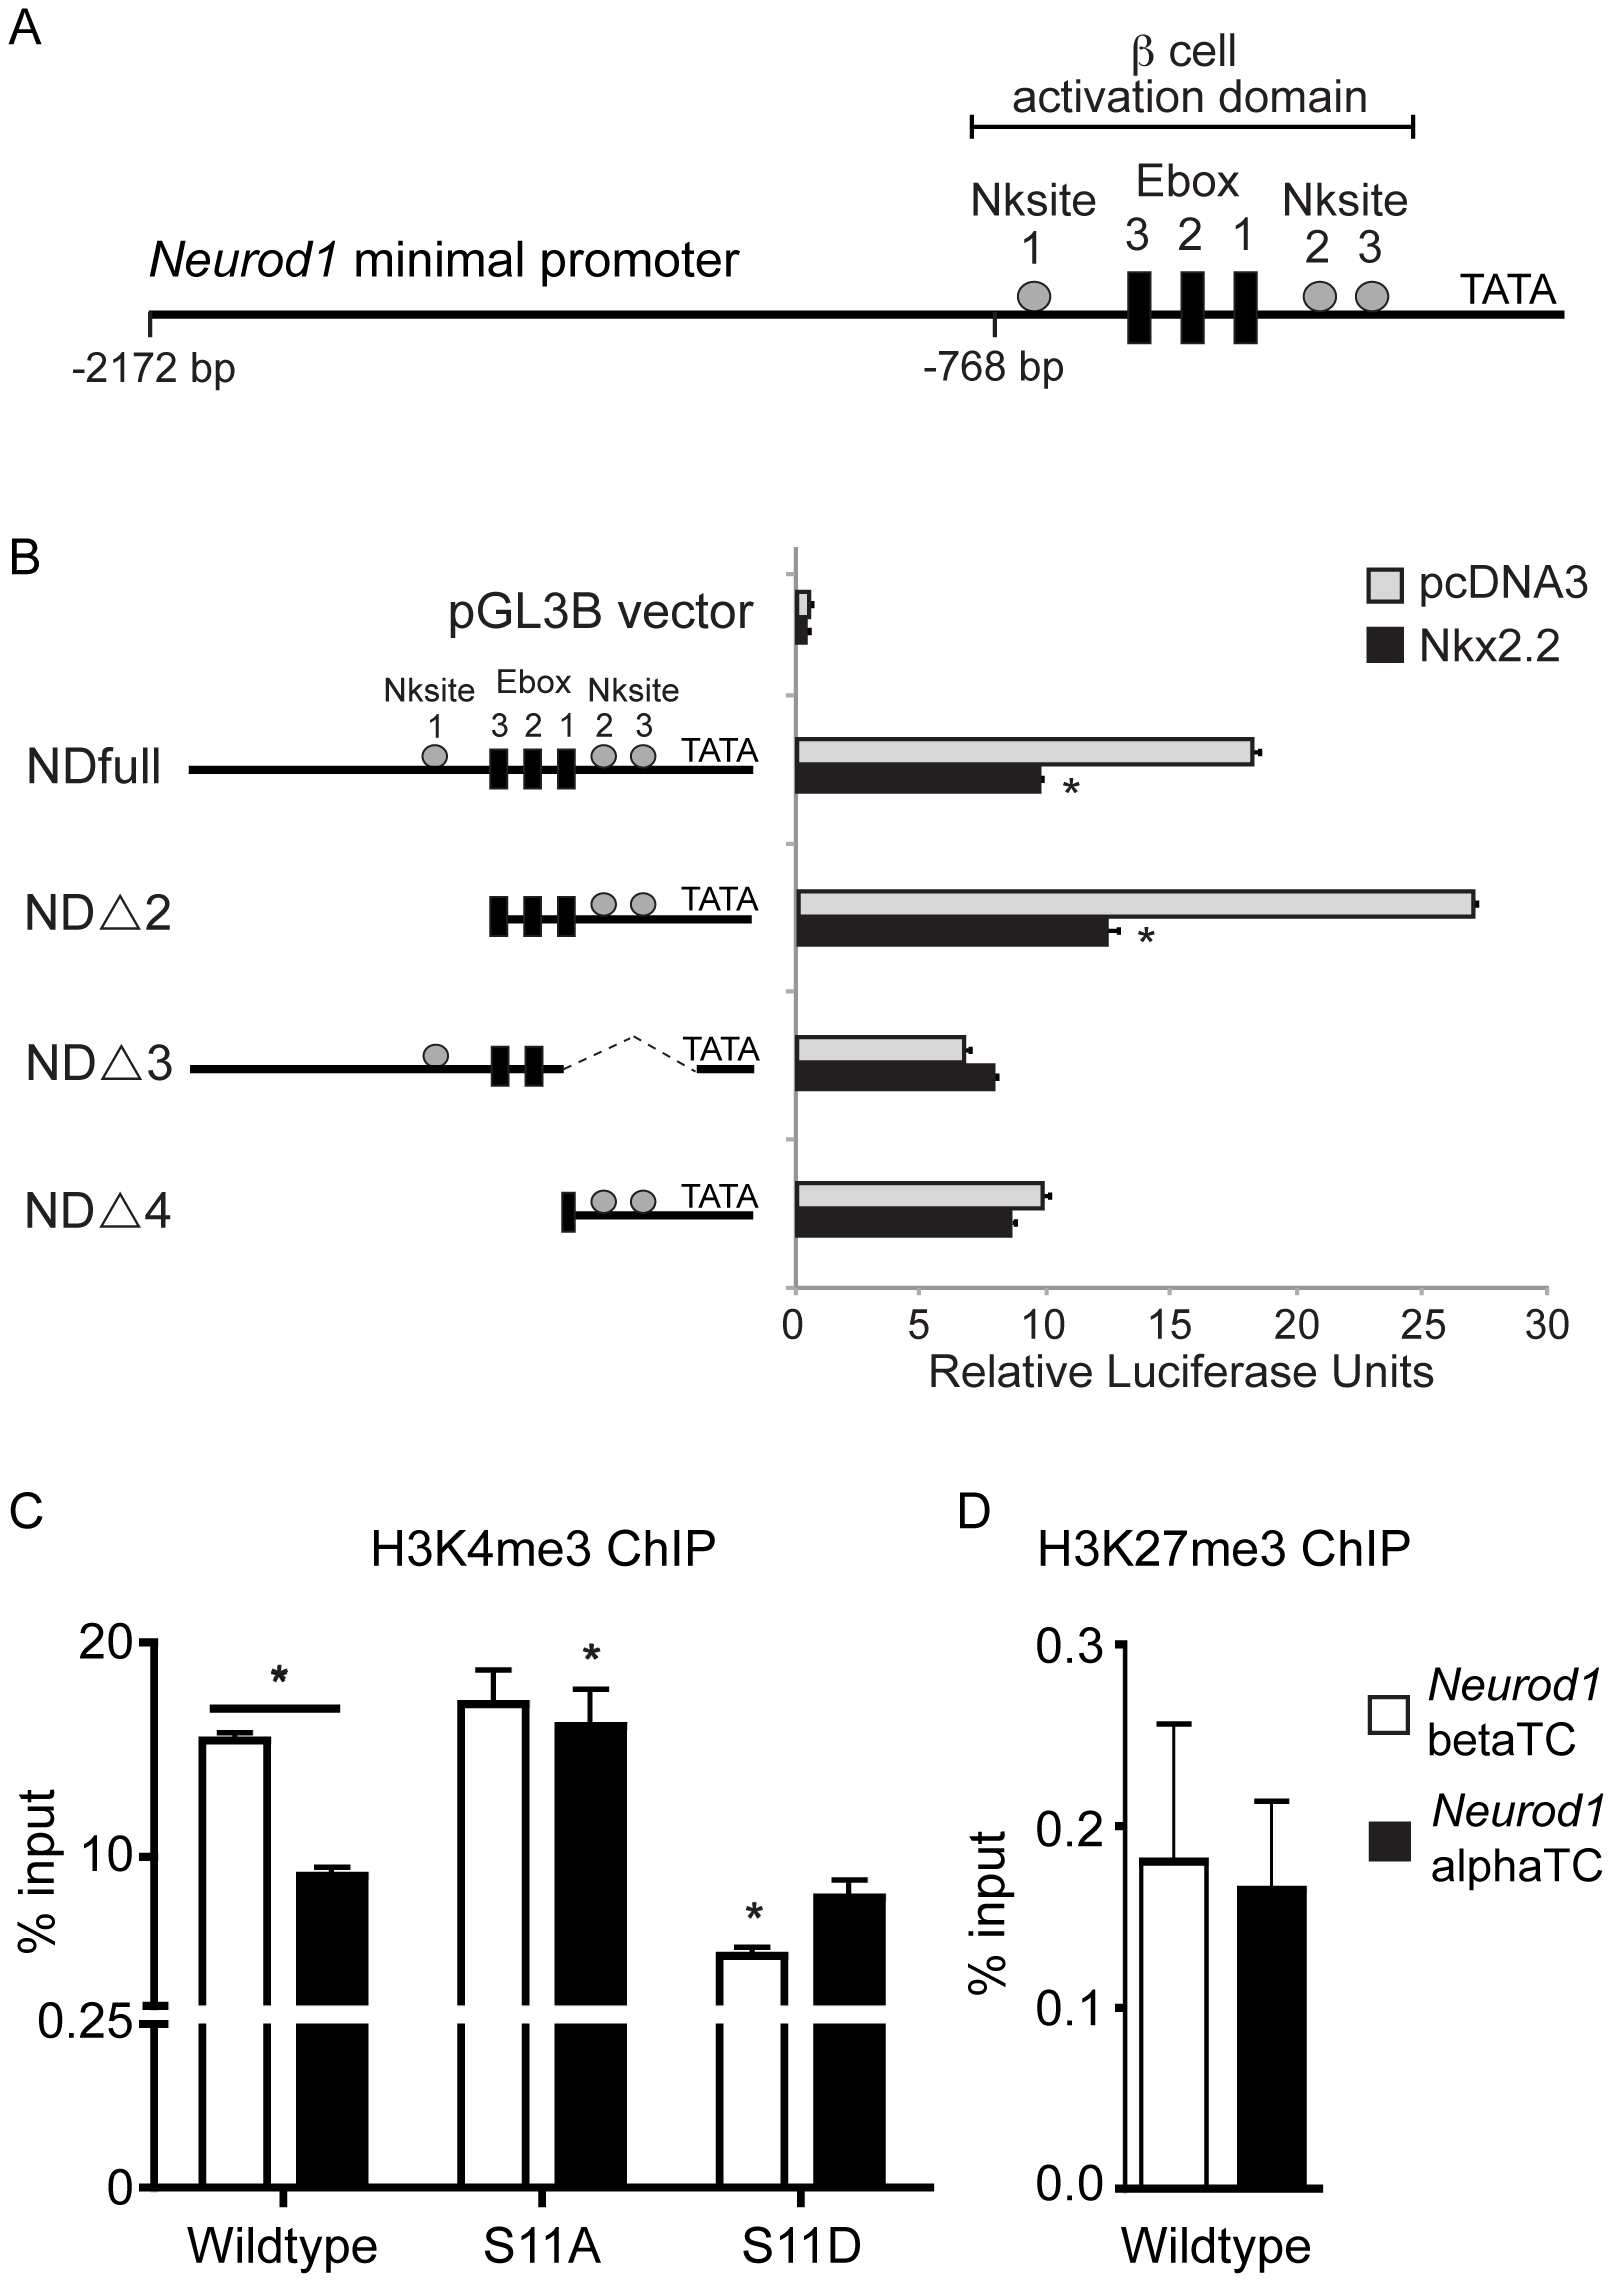 Nkx2.2 represses the <i>Neurod1</i> promoter in alphaTC1 cells.